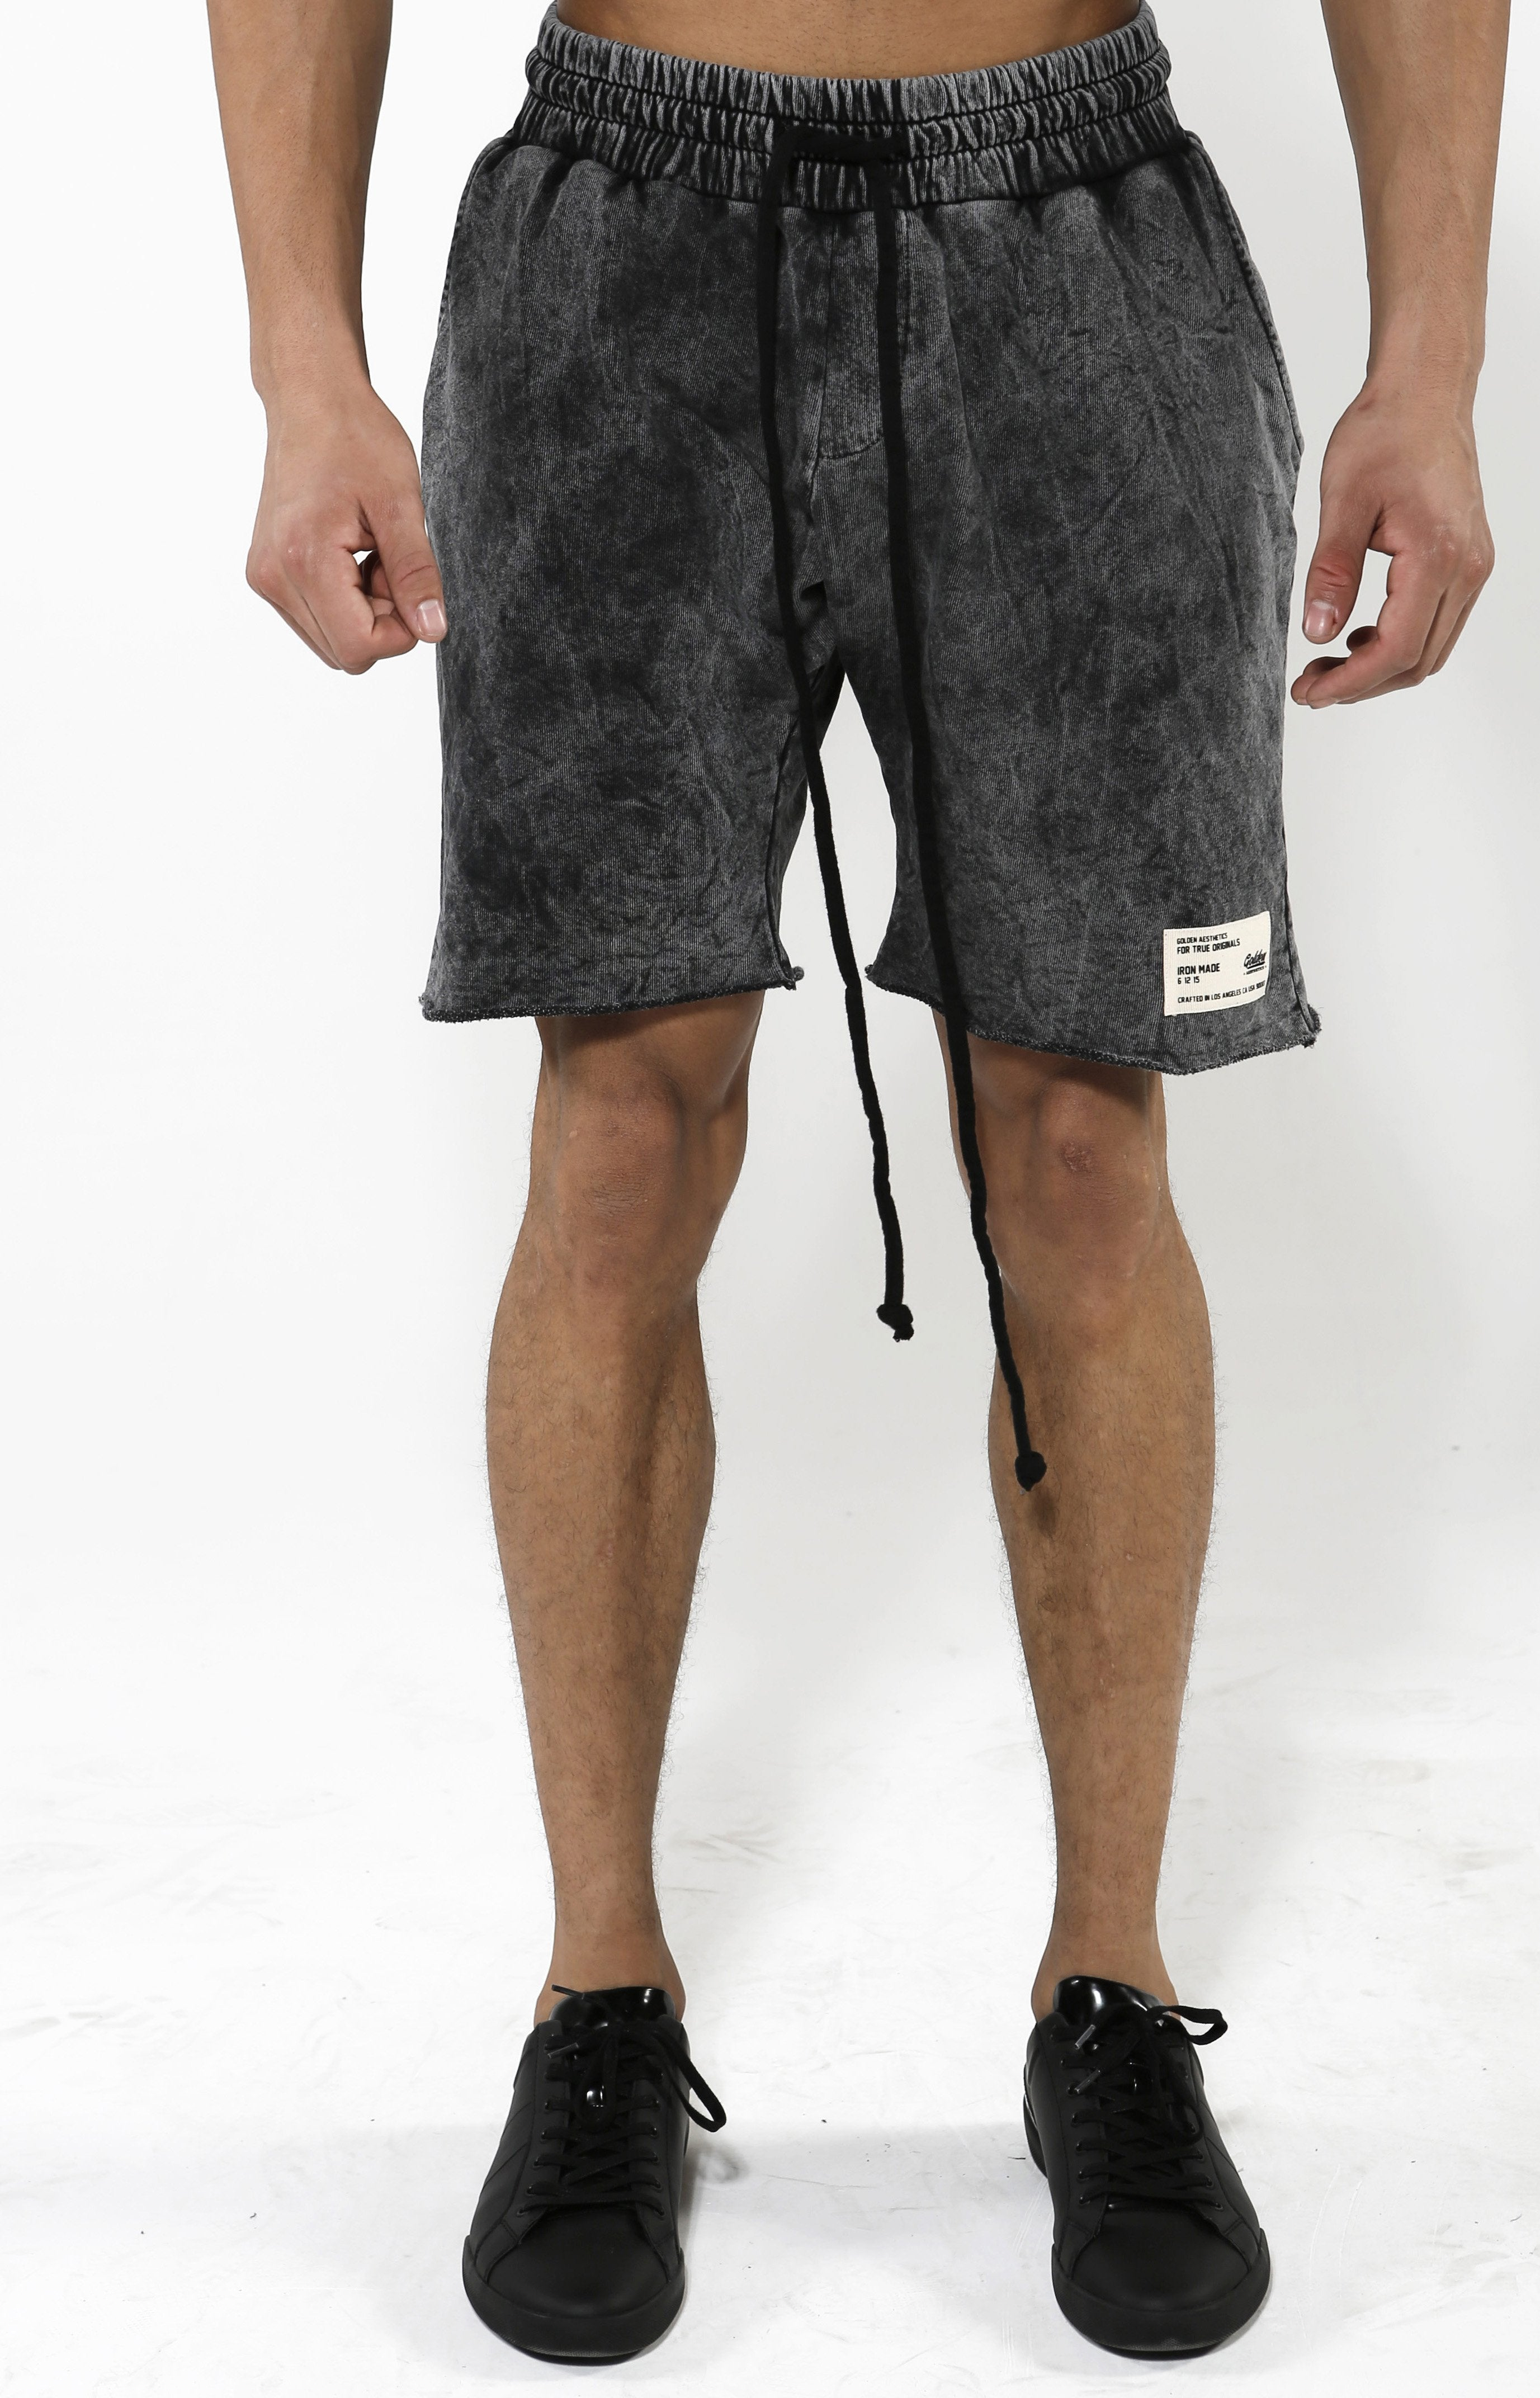 Classic Charcoal Shorts - Golden Aesthetics